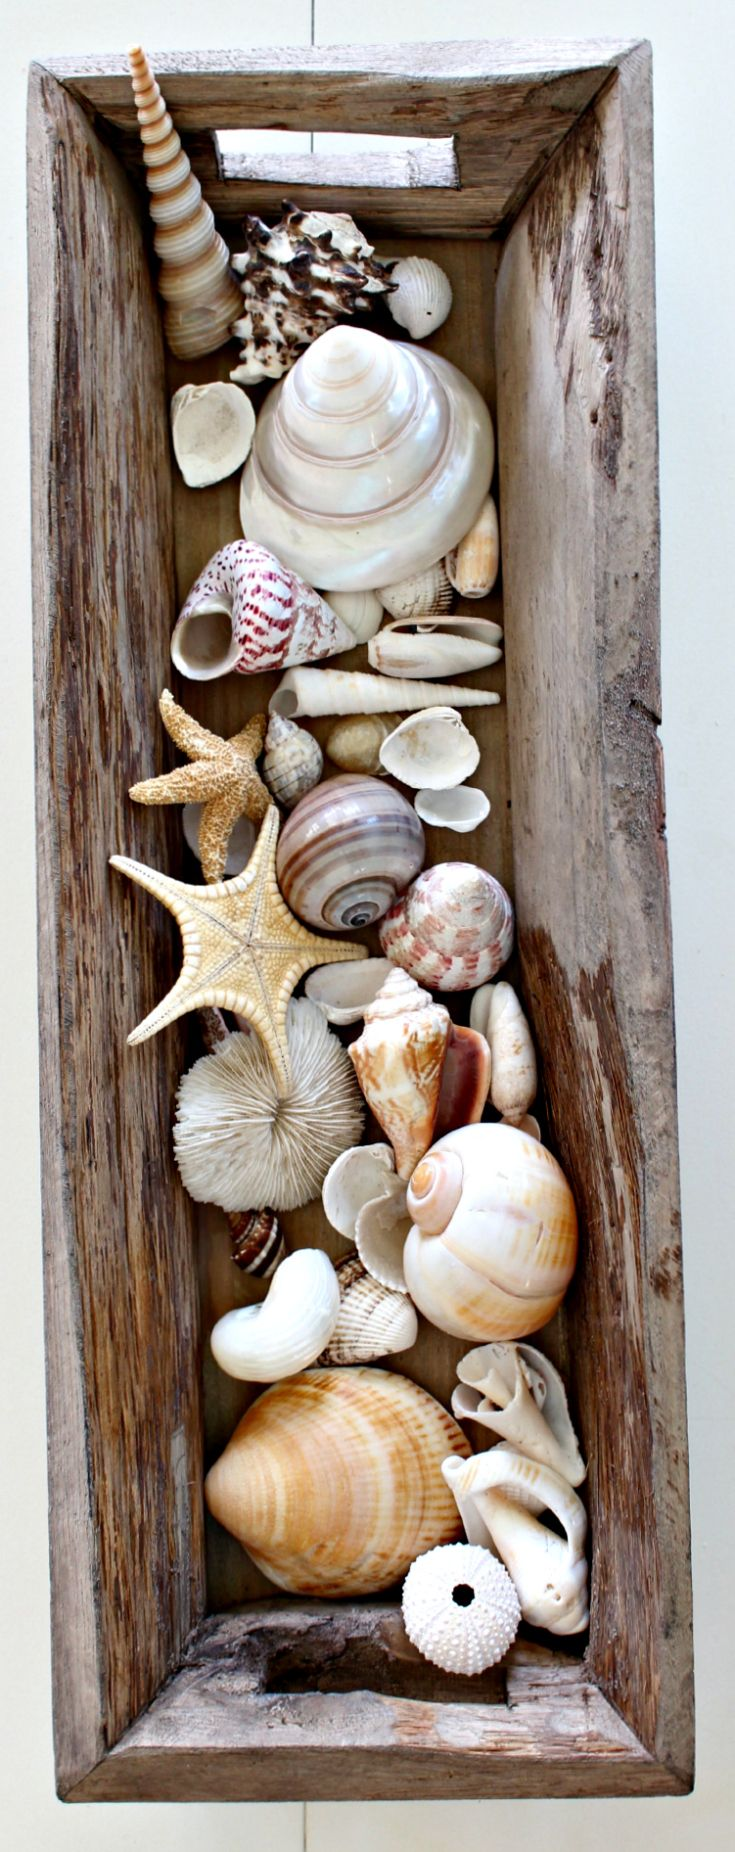 Easy coastal decorating ideas from Vintage American Home blog   26 wood tray